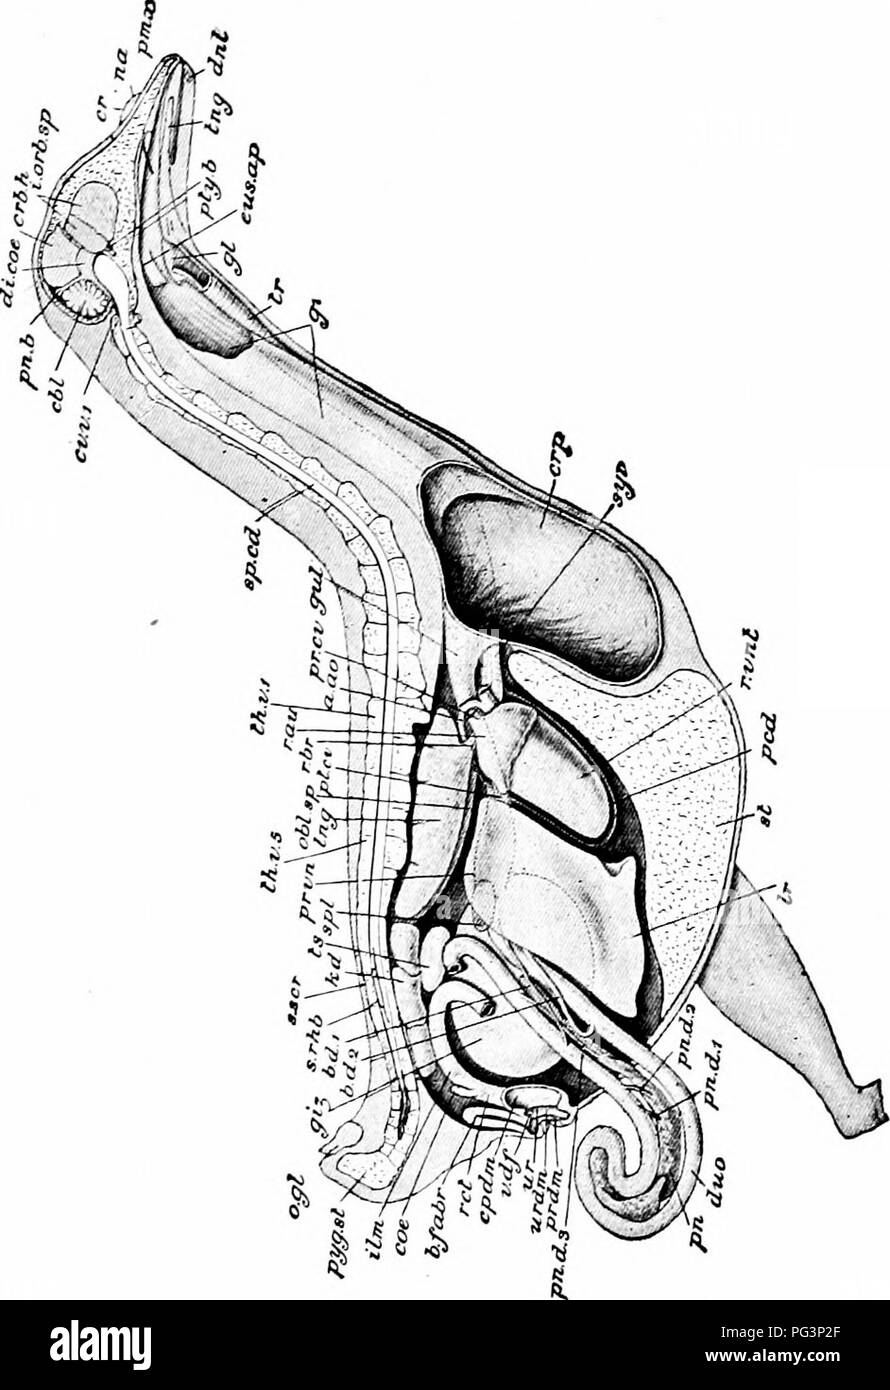 . A manual of zoology. . Fig. 287— Columba livia. Dissection from the right side. The body-wall, with the vertebral column, sternum, brain, etc., are in sagittal section : portions of the gullet and crop are cut away and the cloaca is opened; nearly the whole of the ilium is removed, and the duodenum is displaced outwards, a. ao, aortic arch; bd. I, bd. 2, bile-ducts; b. fabr, bursa Fabricii; cbl, cerebellum; ccc, right ccecum; cpdm, coprodaeum; cr, cere; crb. h, left cerebral hemisphere; crfi, crop; cr. 7>. /, first cervical vertebrae; di. coe, diacccle; dj/t, dentary; dito, duodenum; cits - Stock Image